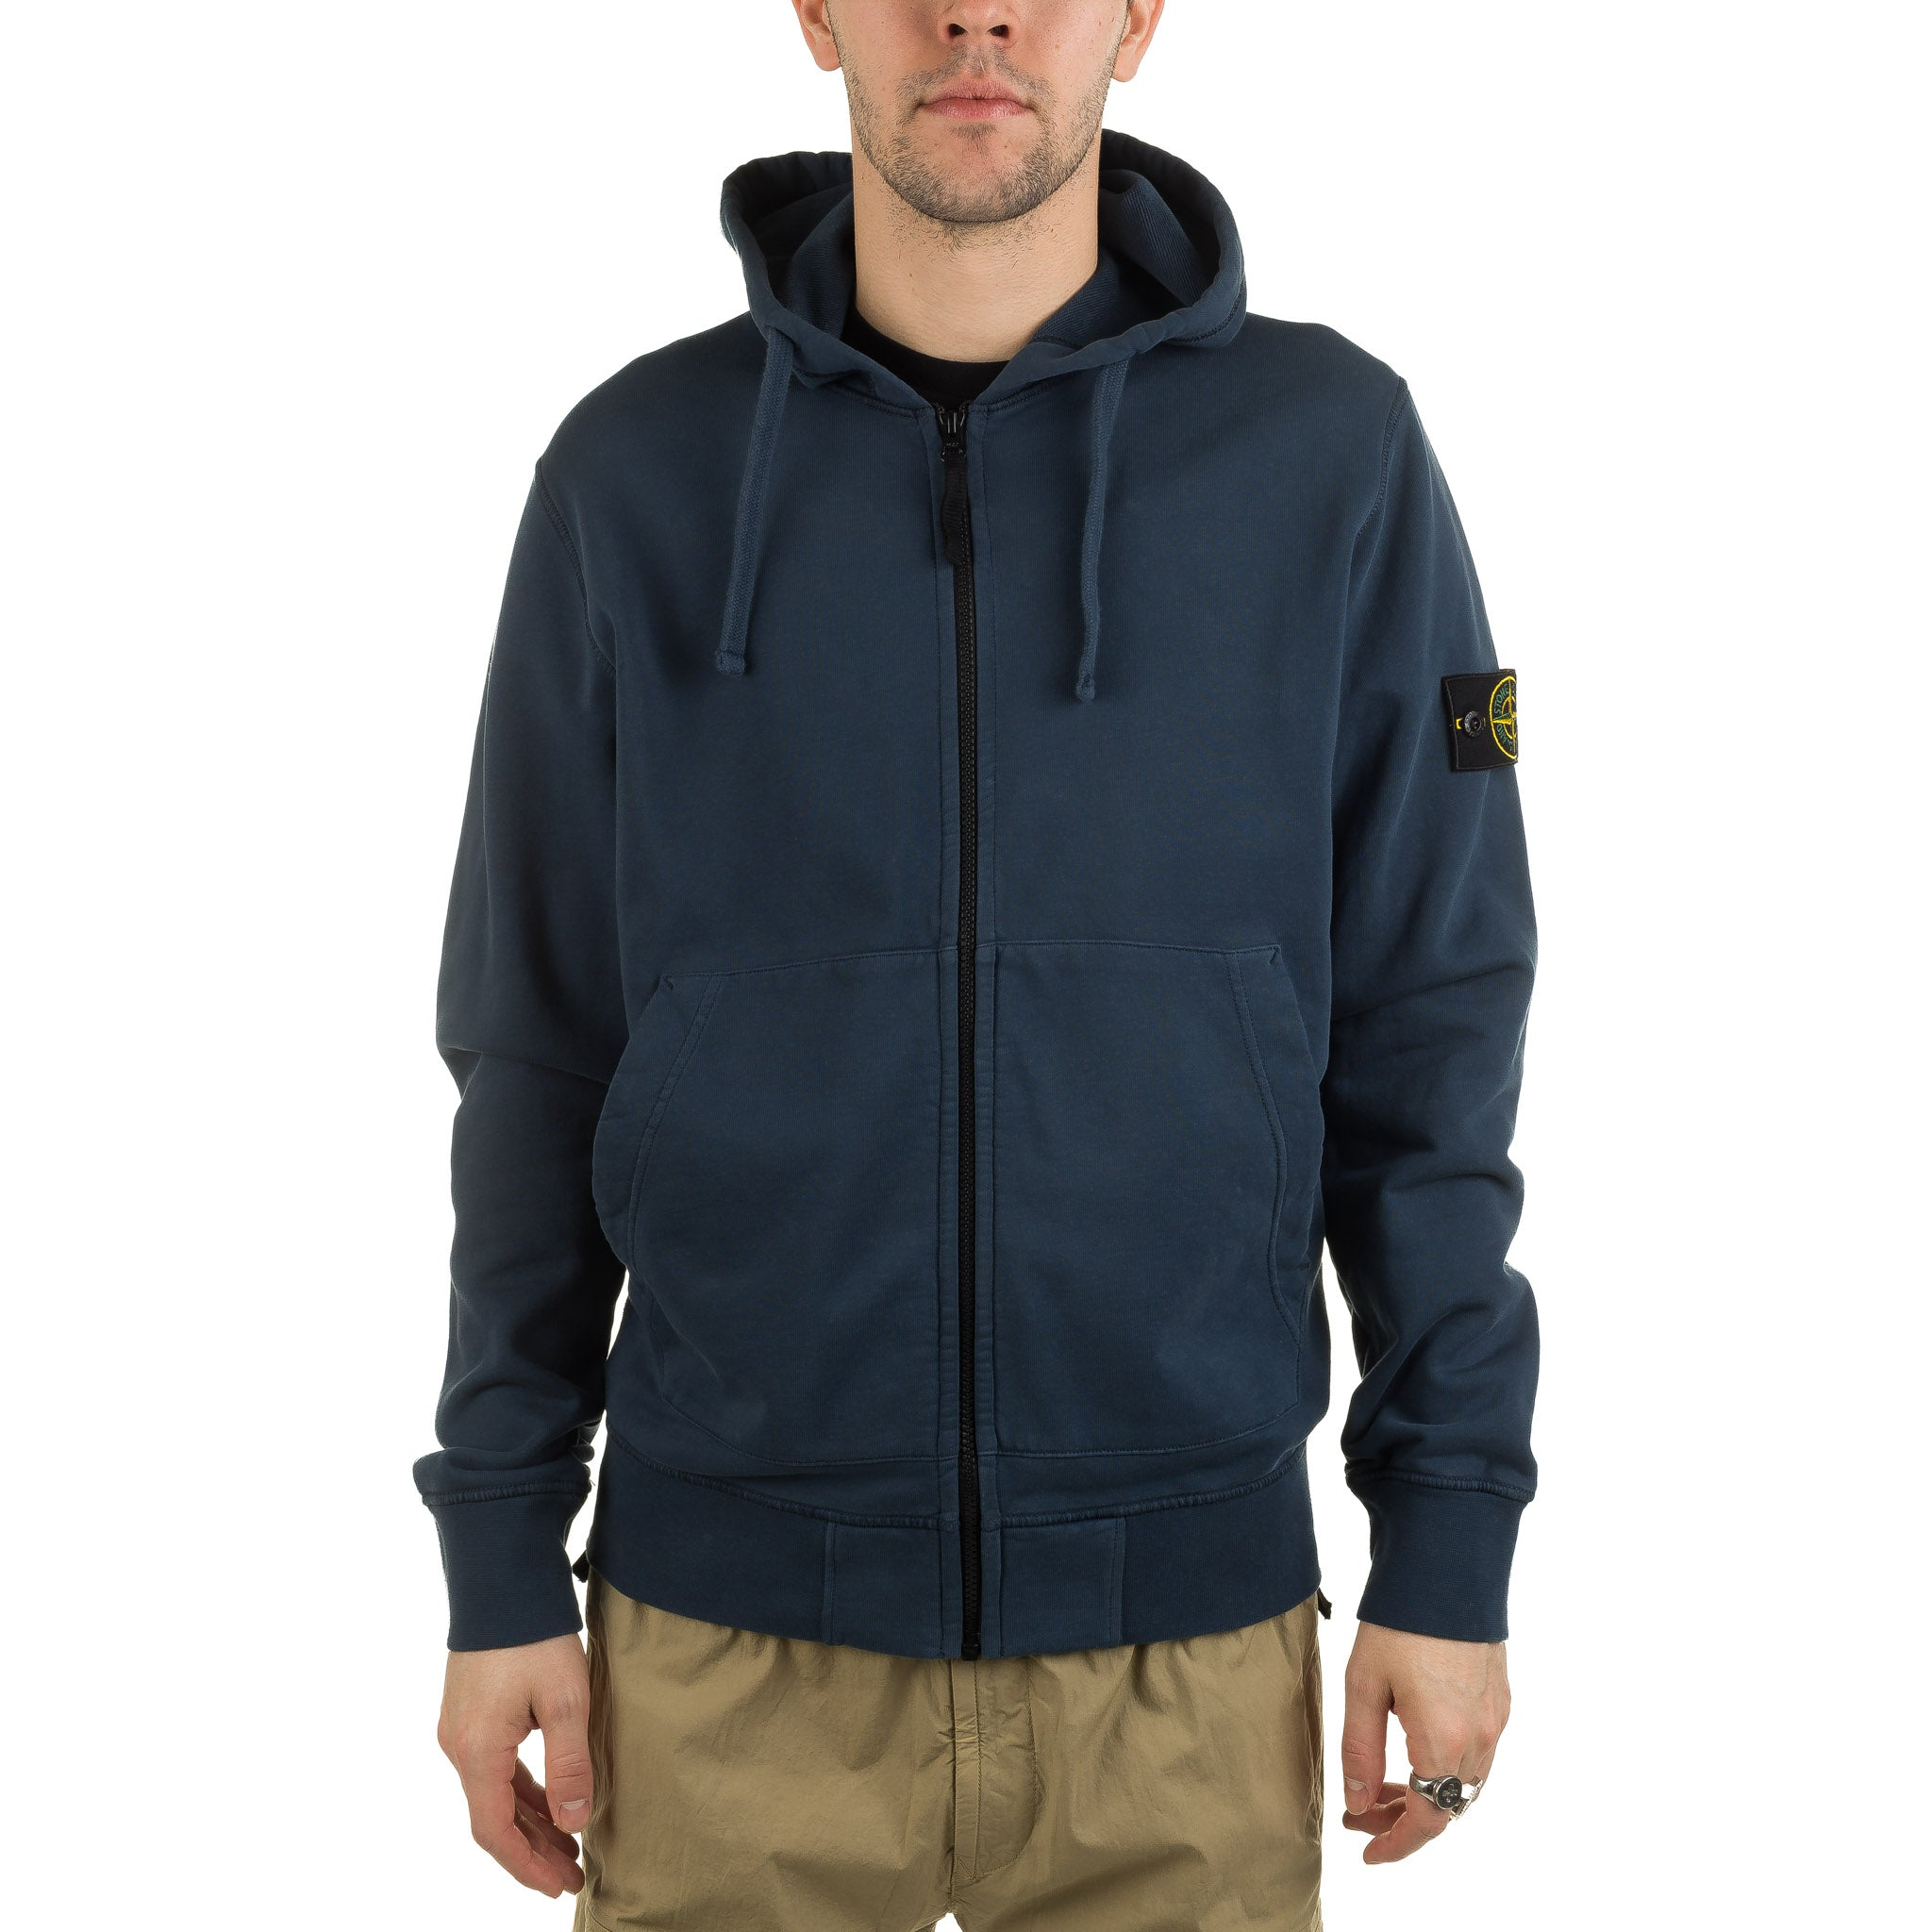 Garment Dyed Full Zip Hoodie 721564251 Blue Marine